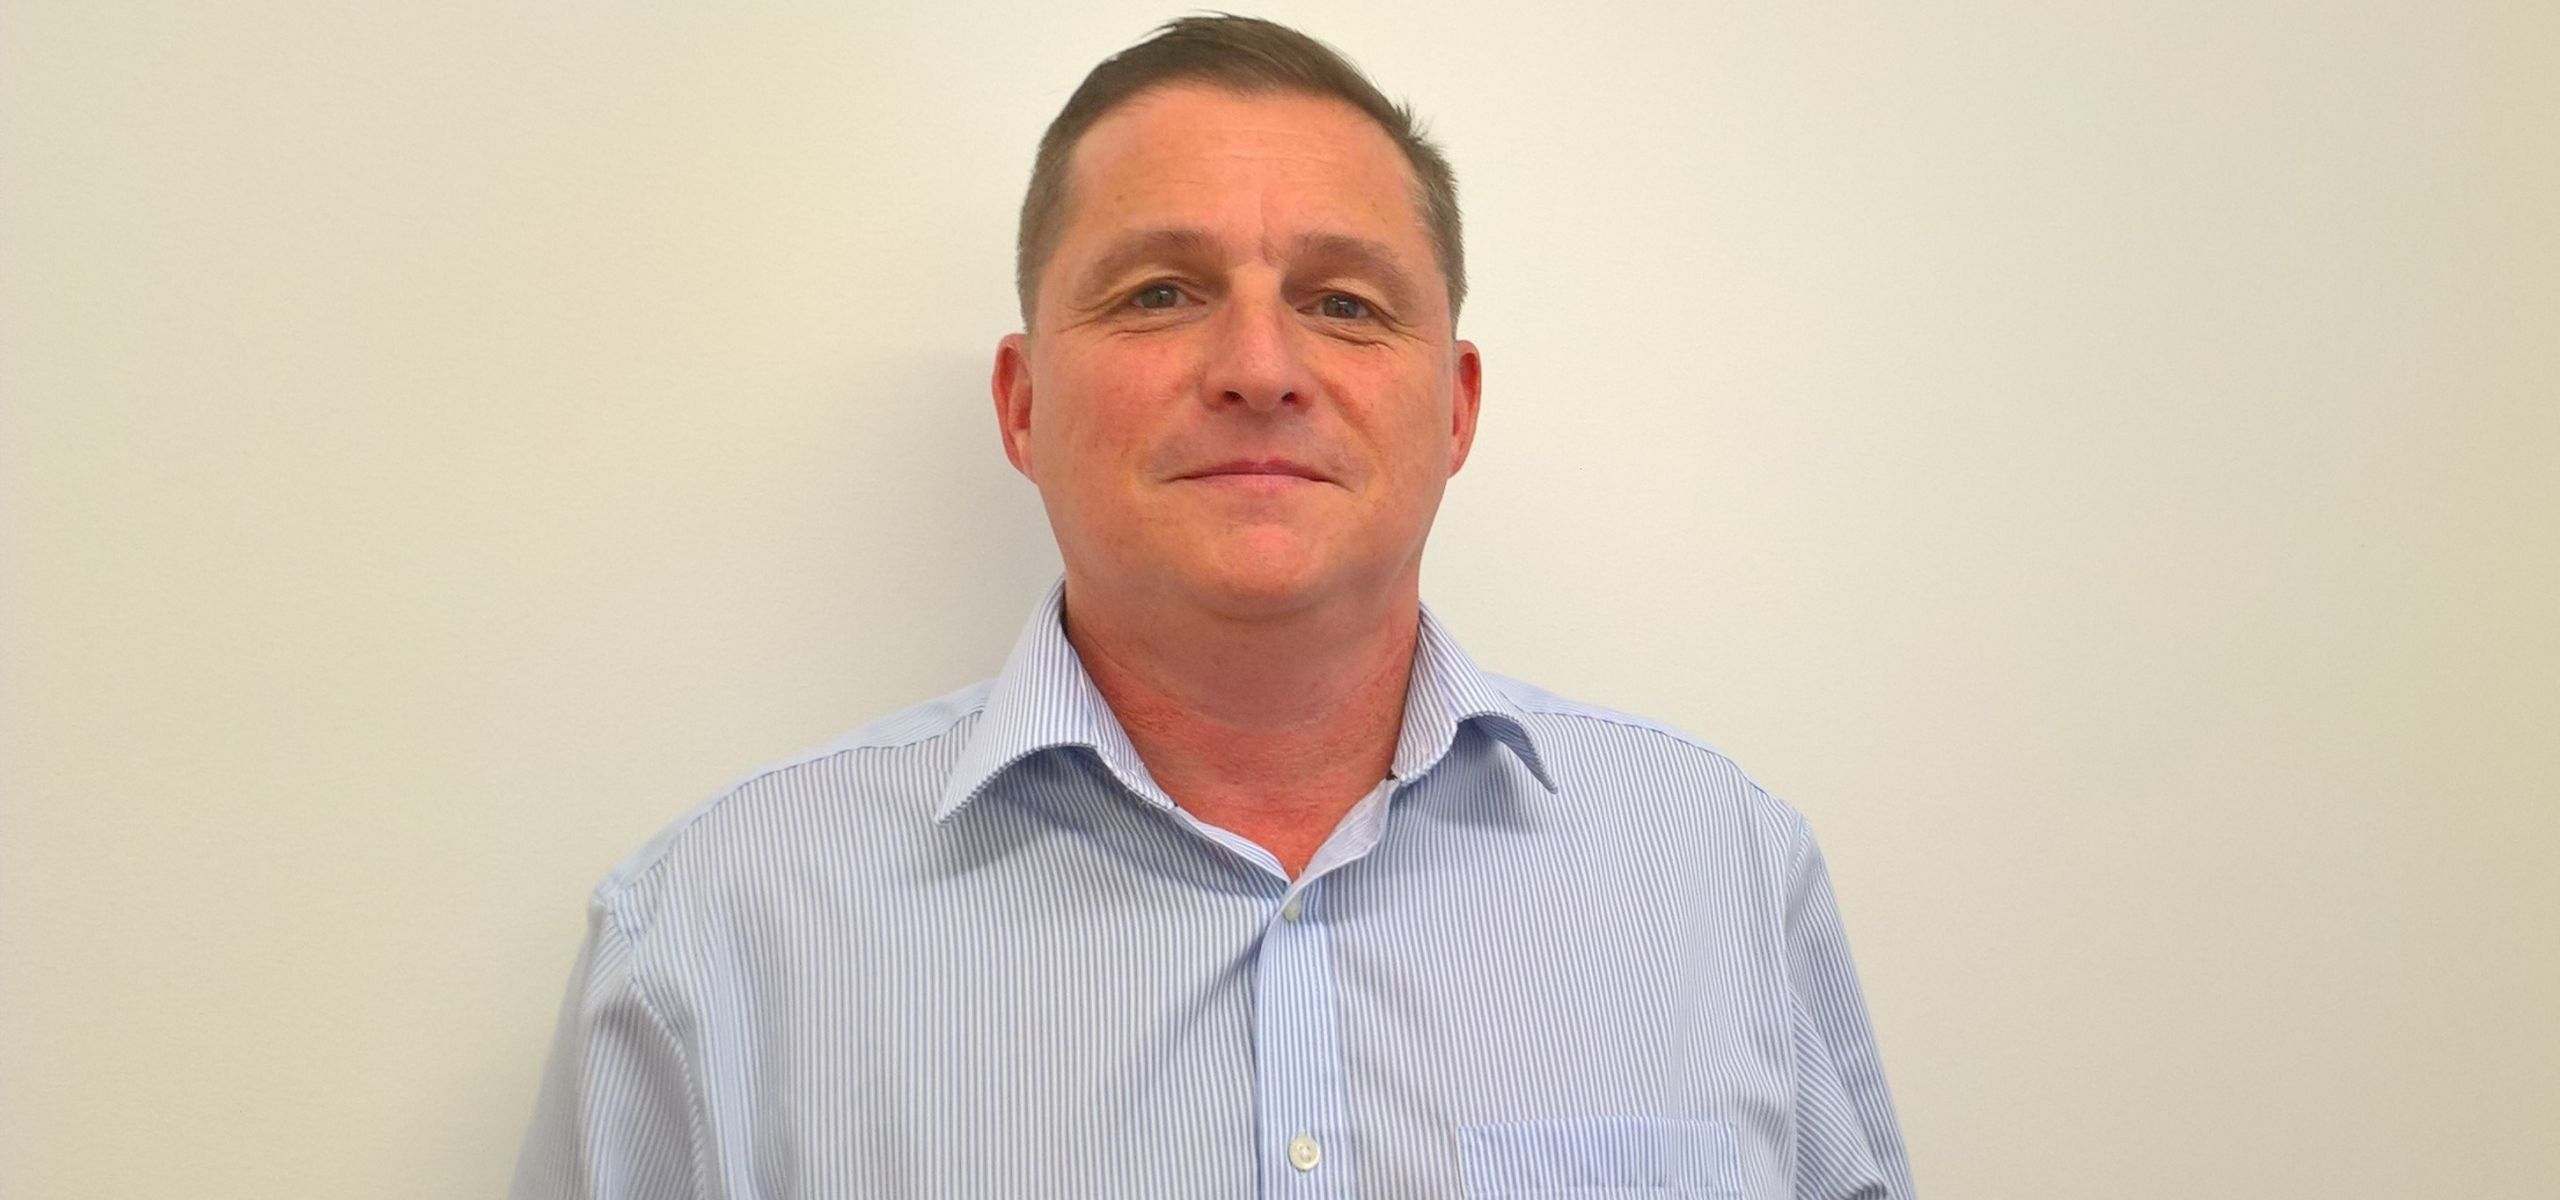 RJ Power Networks Appoints HSQE Manager Mark Hayes